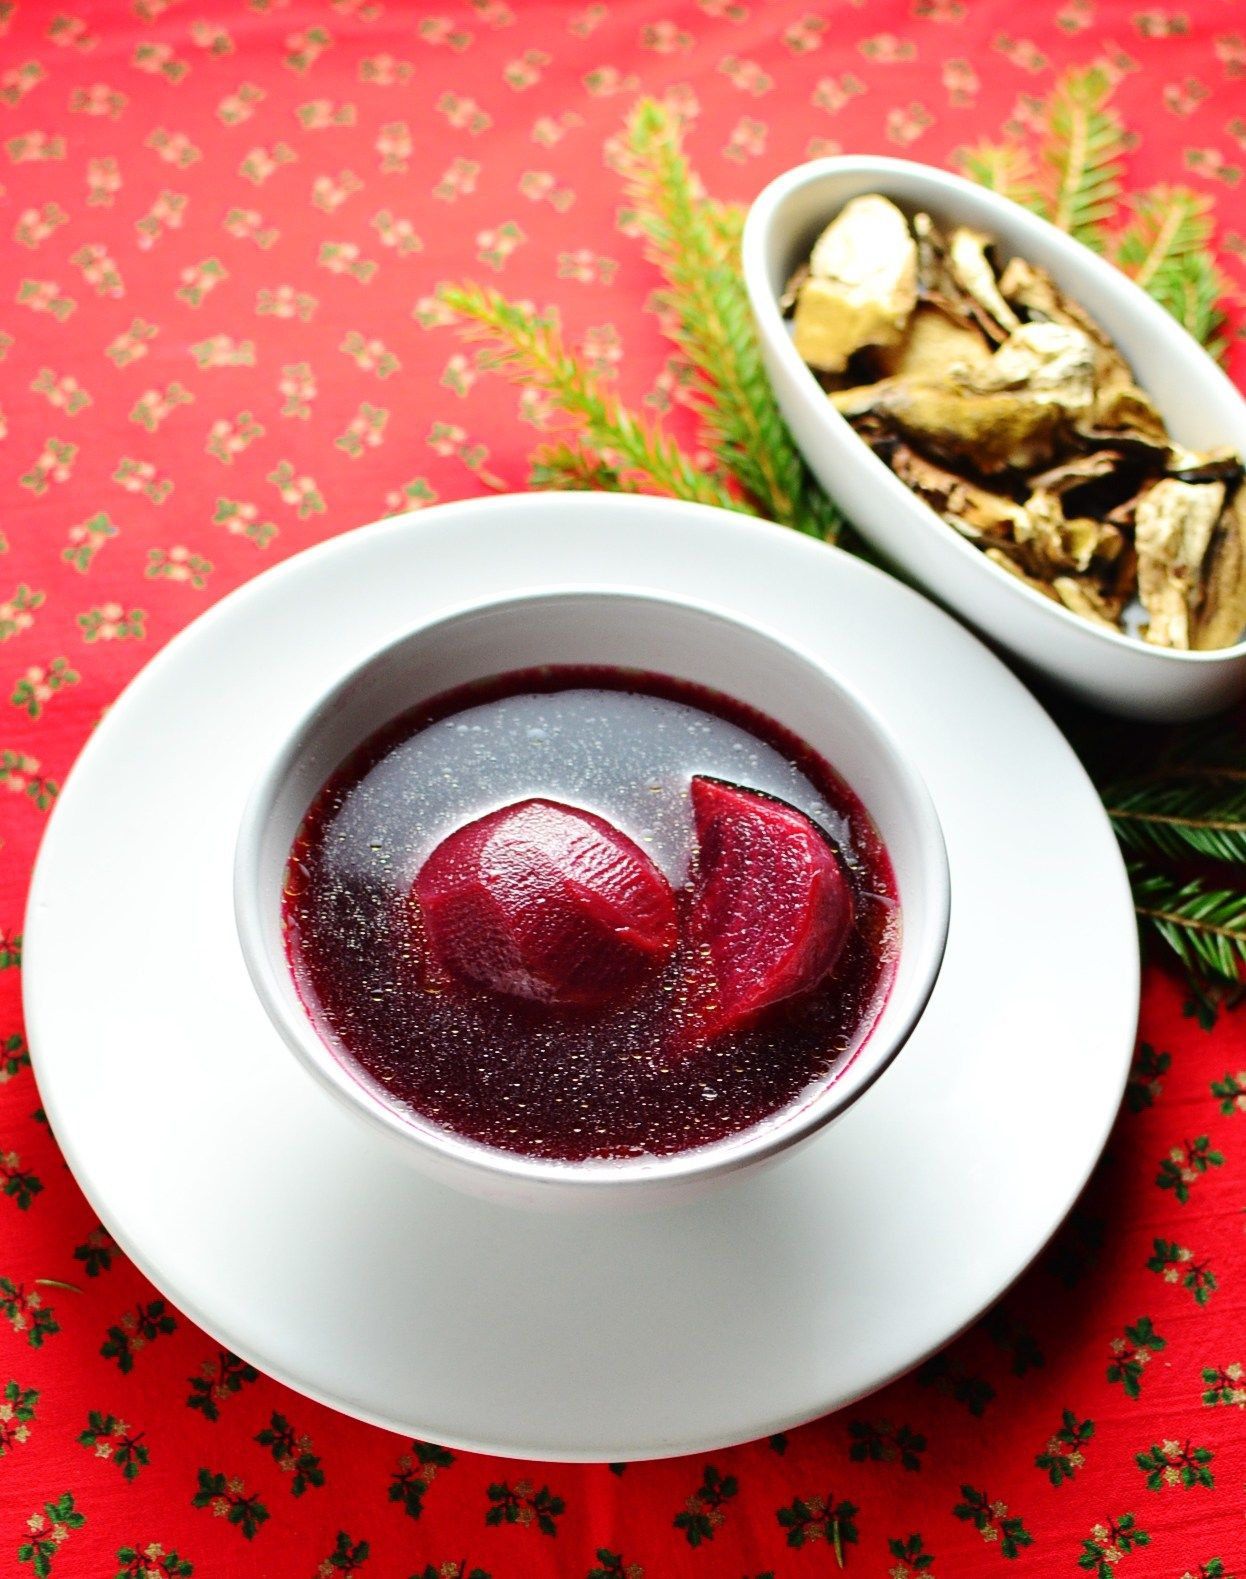 Polish christmas eve borscht 9oking pinterest borscht this traditional vegetarian polish christmas eve borscht recipe is simple to prepare and best served with porcini dumplings forumfinder Images